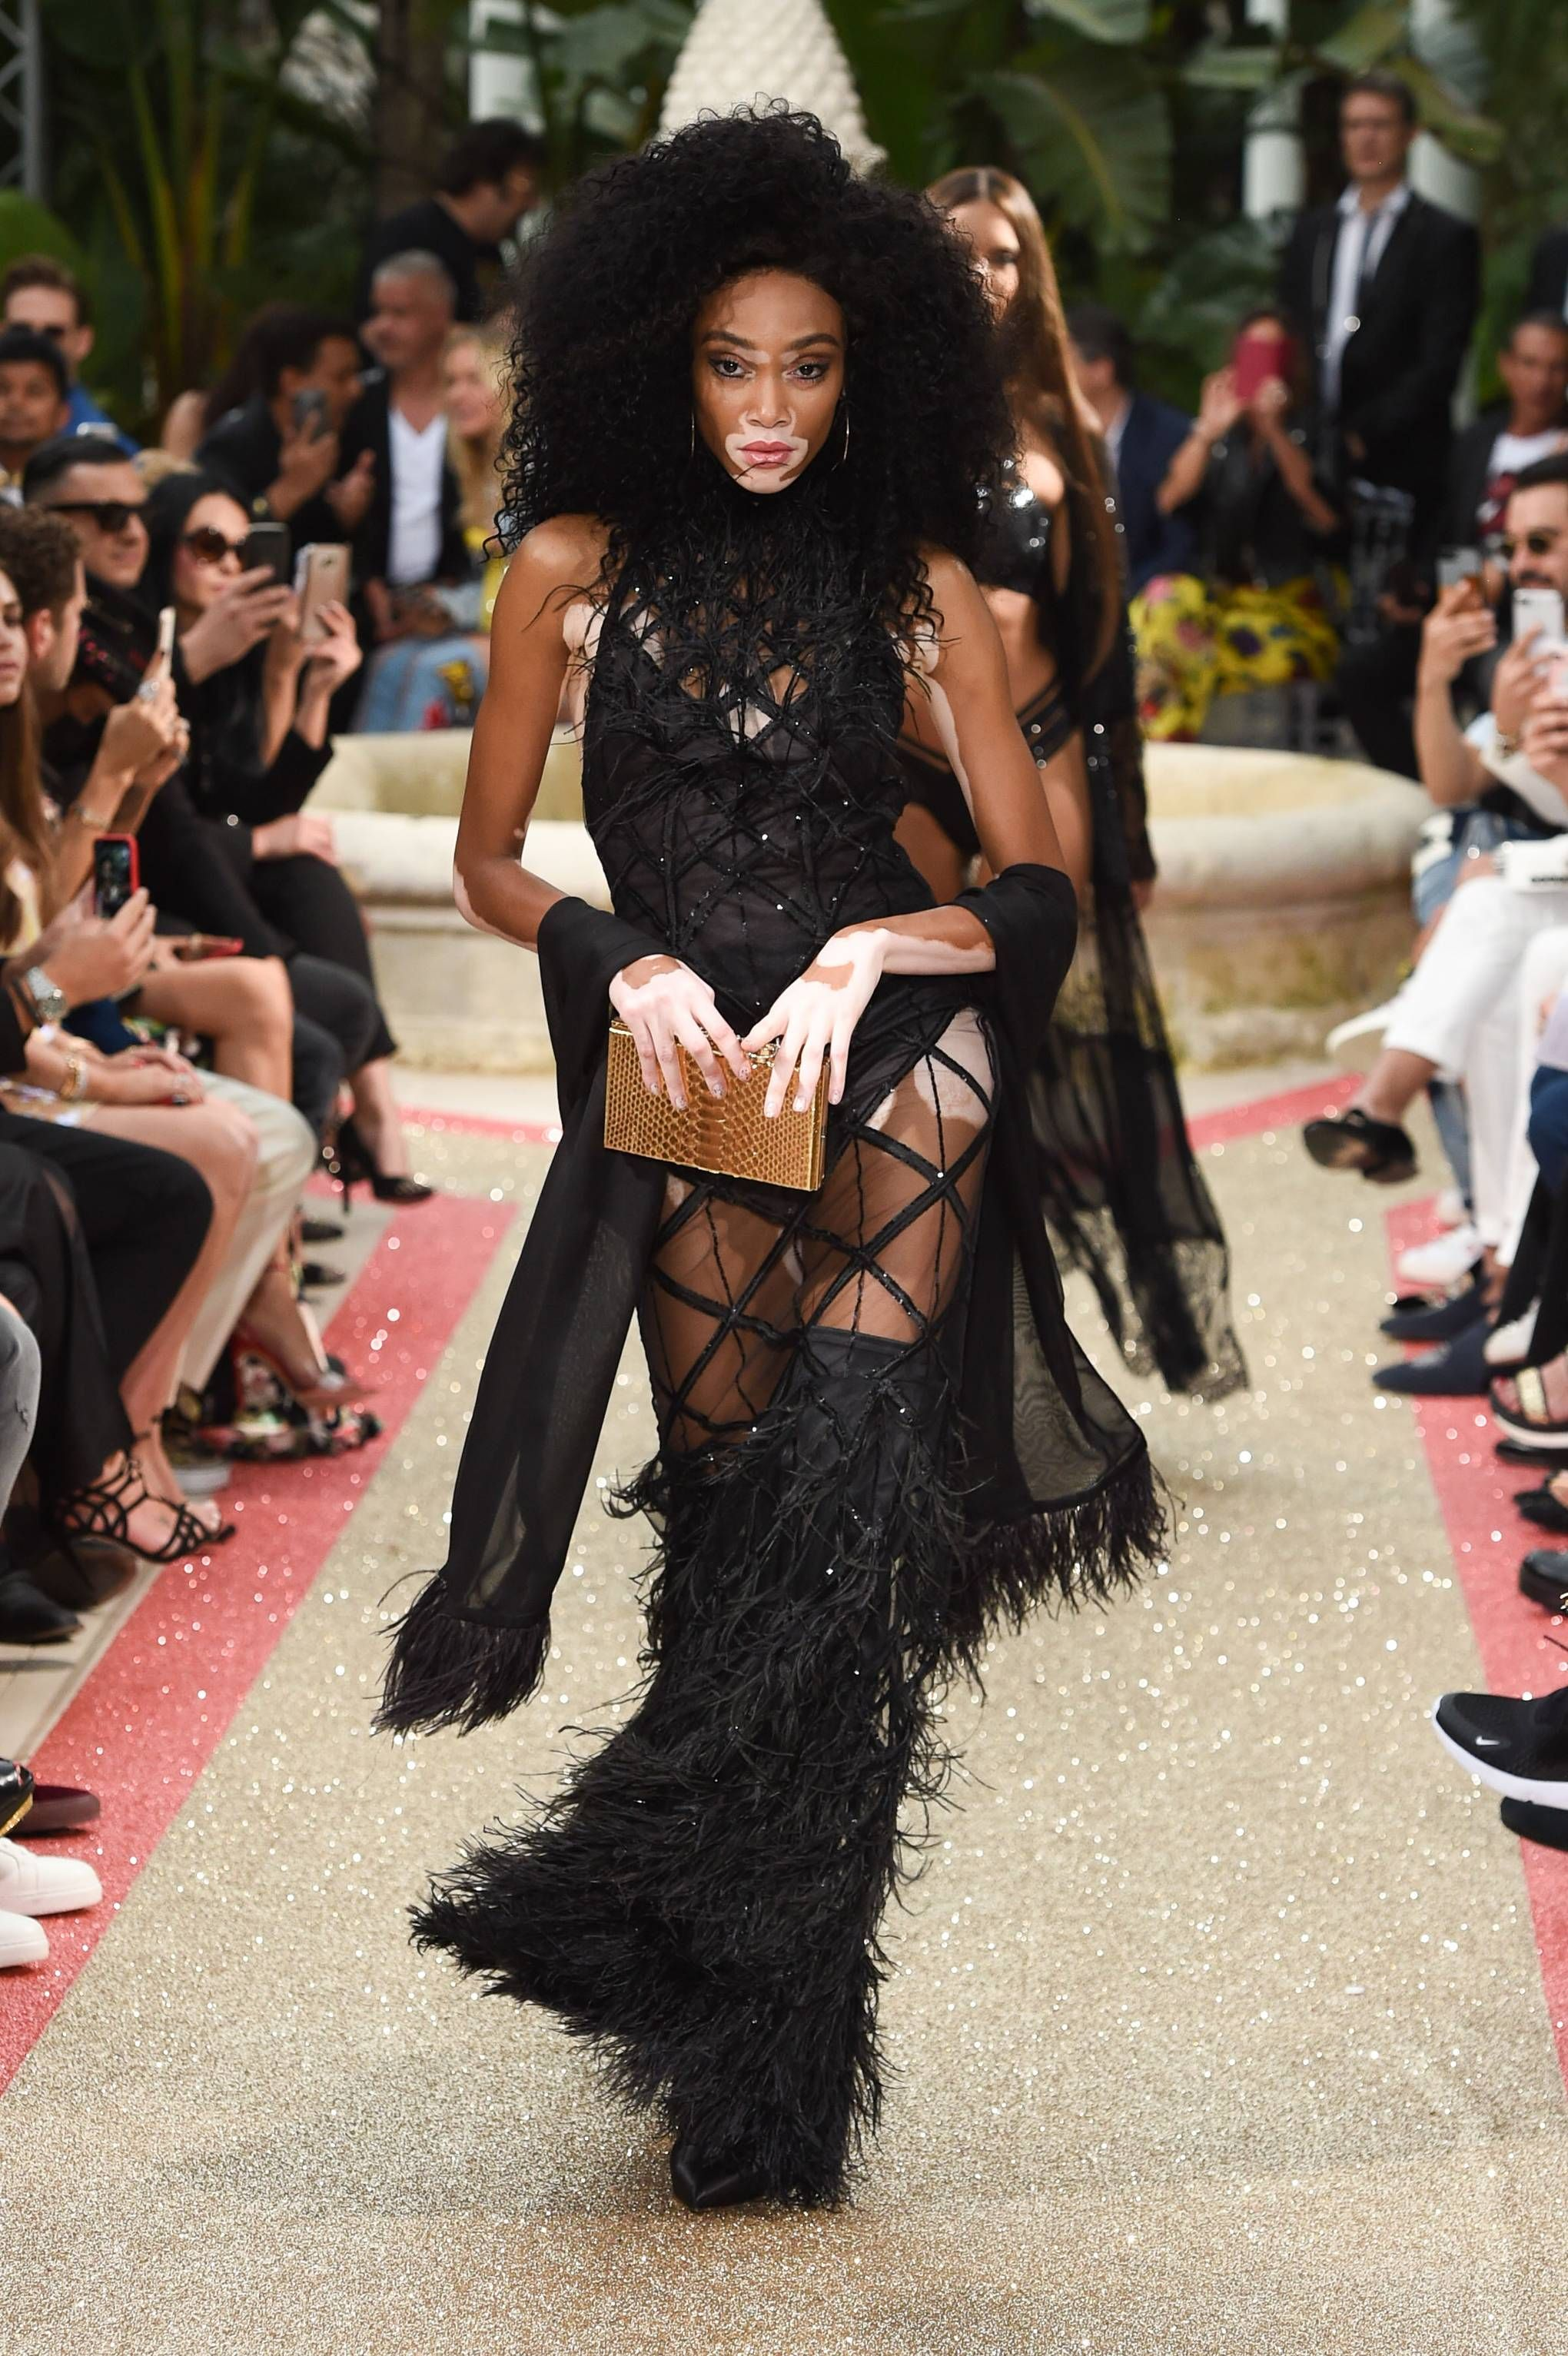 e7e23164888 Model Winnie Harlow on the runway at Philipp Plein Spring/Summer 2019  Resort Collection